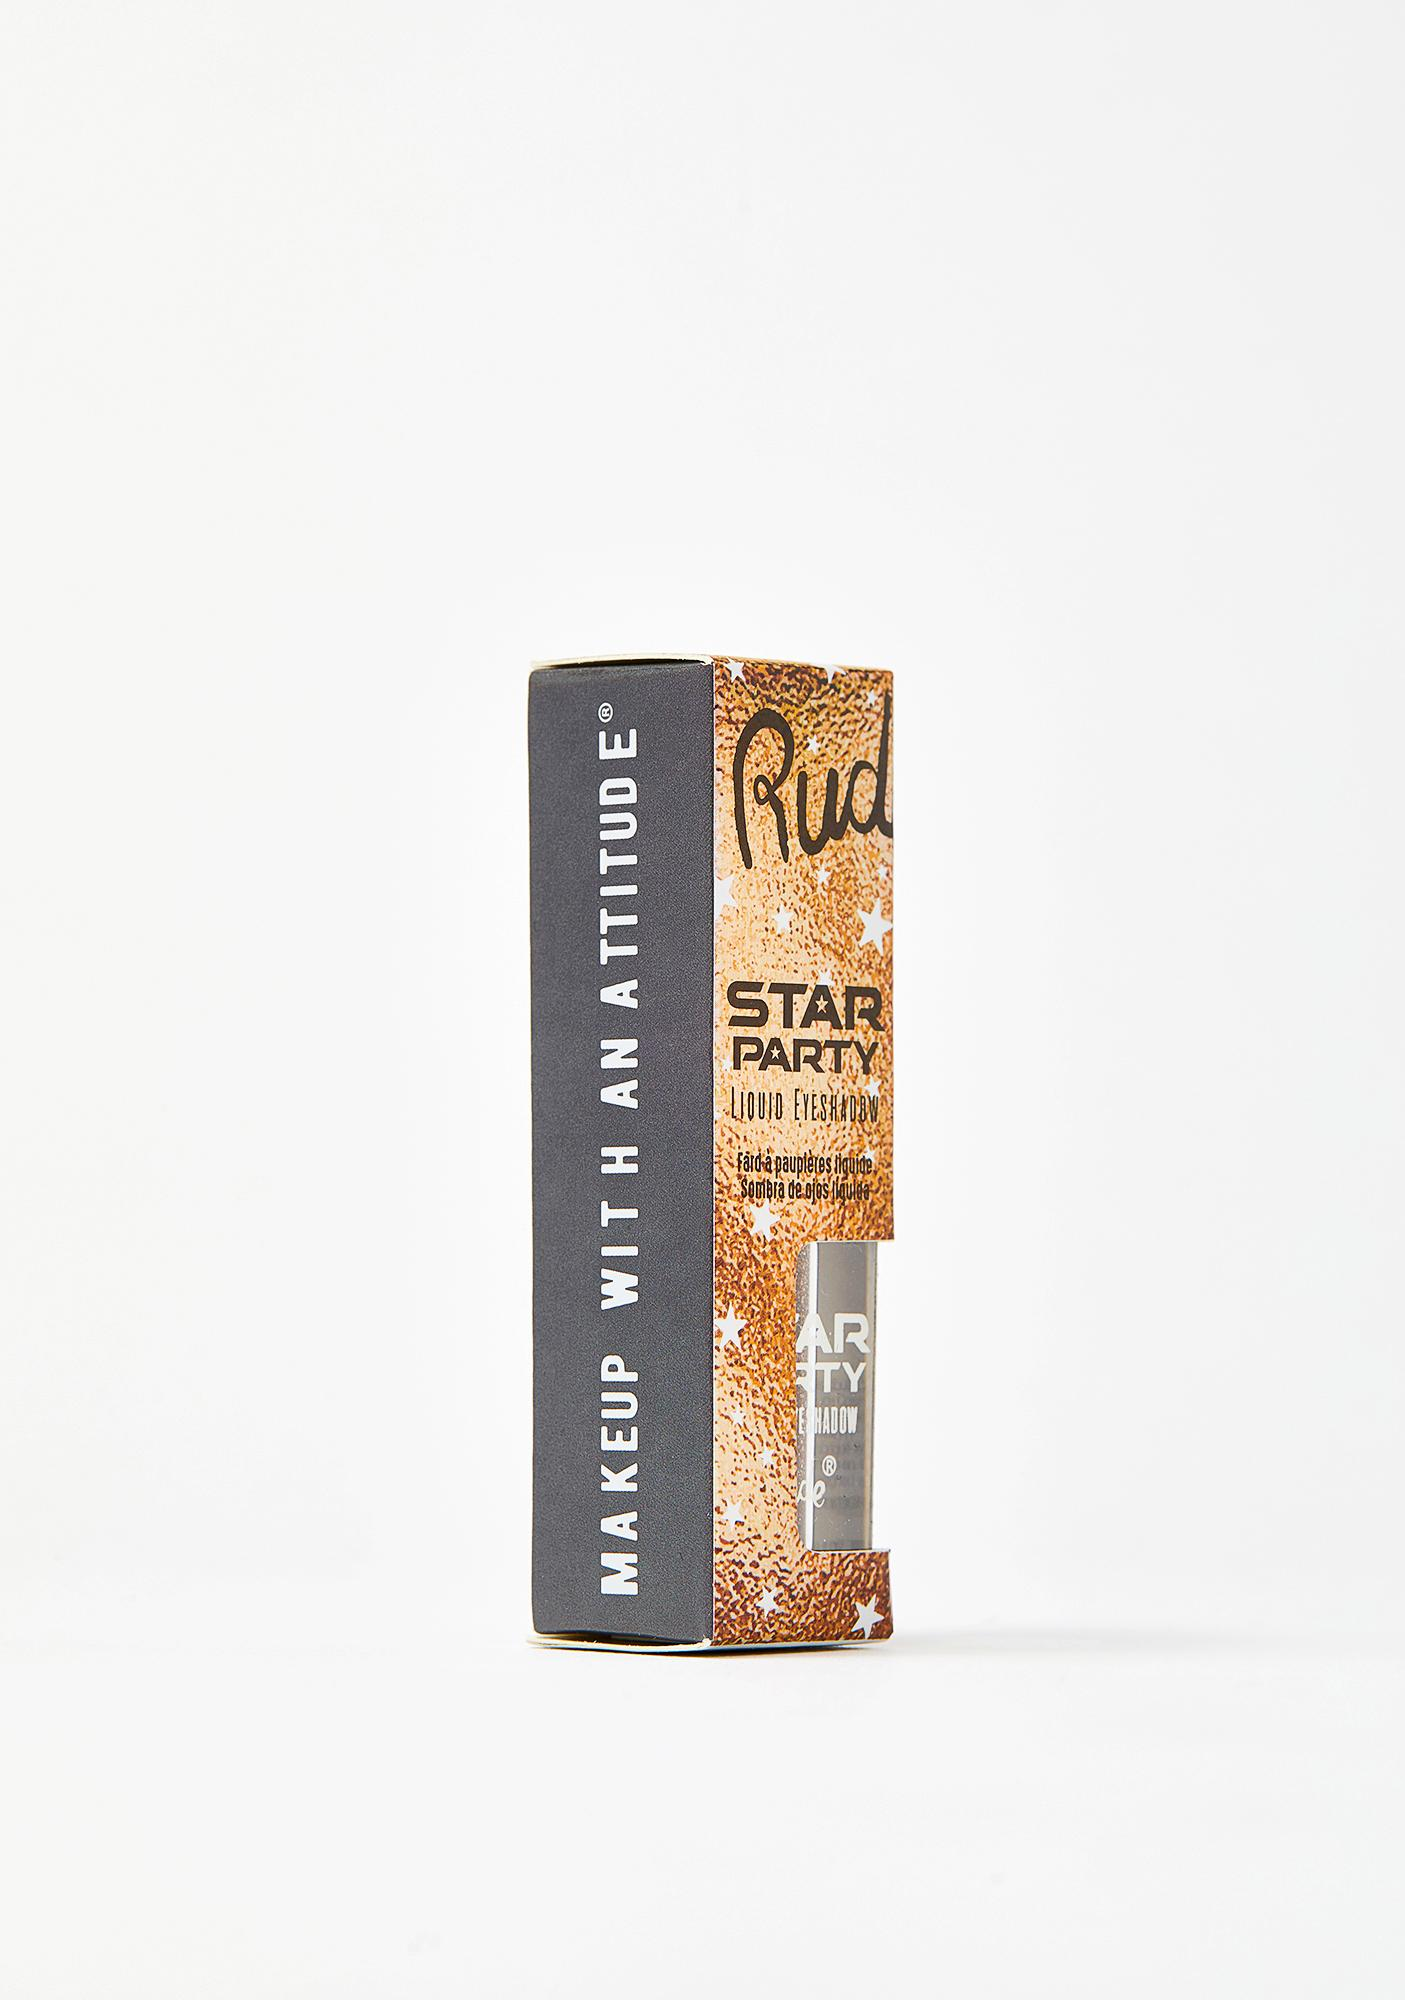 Rude Cosmetics Big Bang Star Party Liquid Glitter Eyeshadow